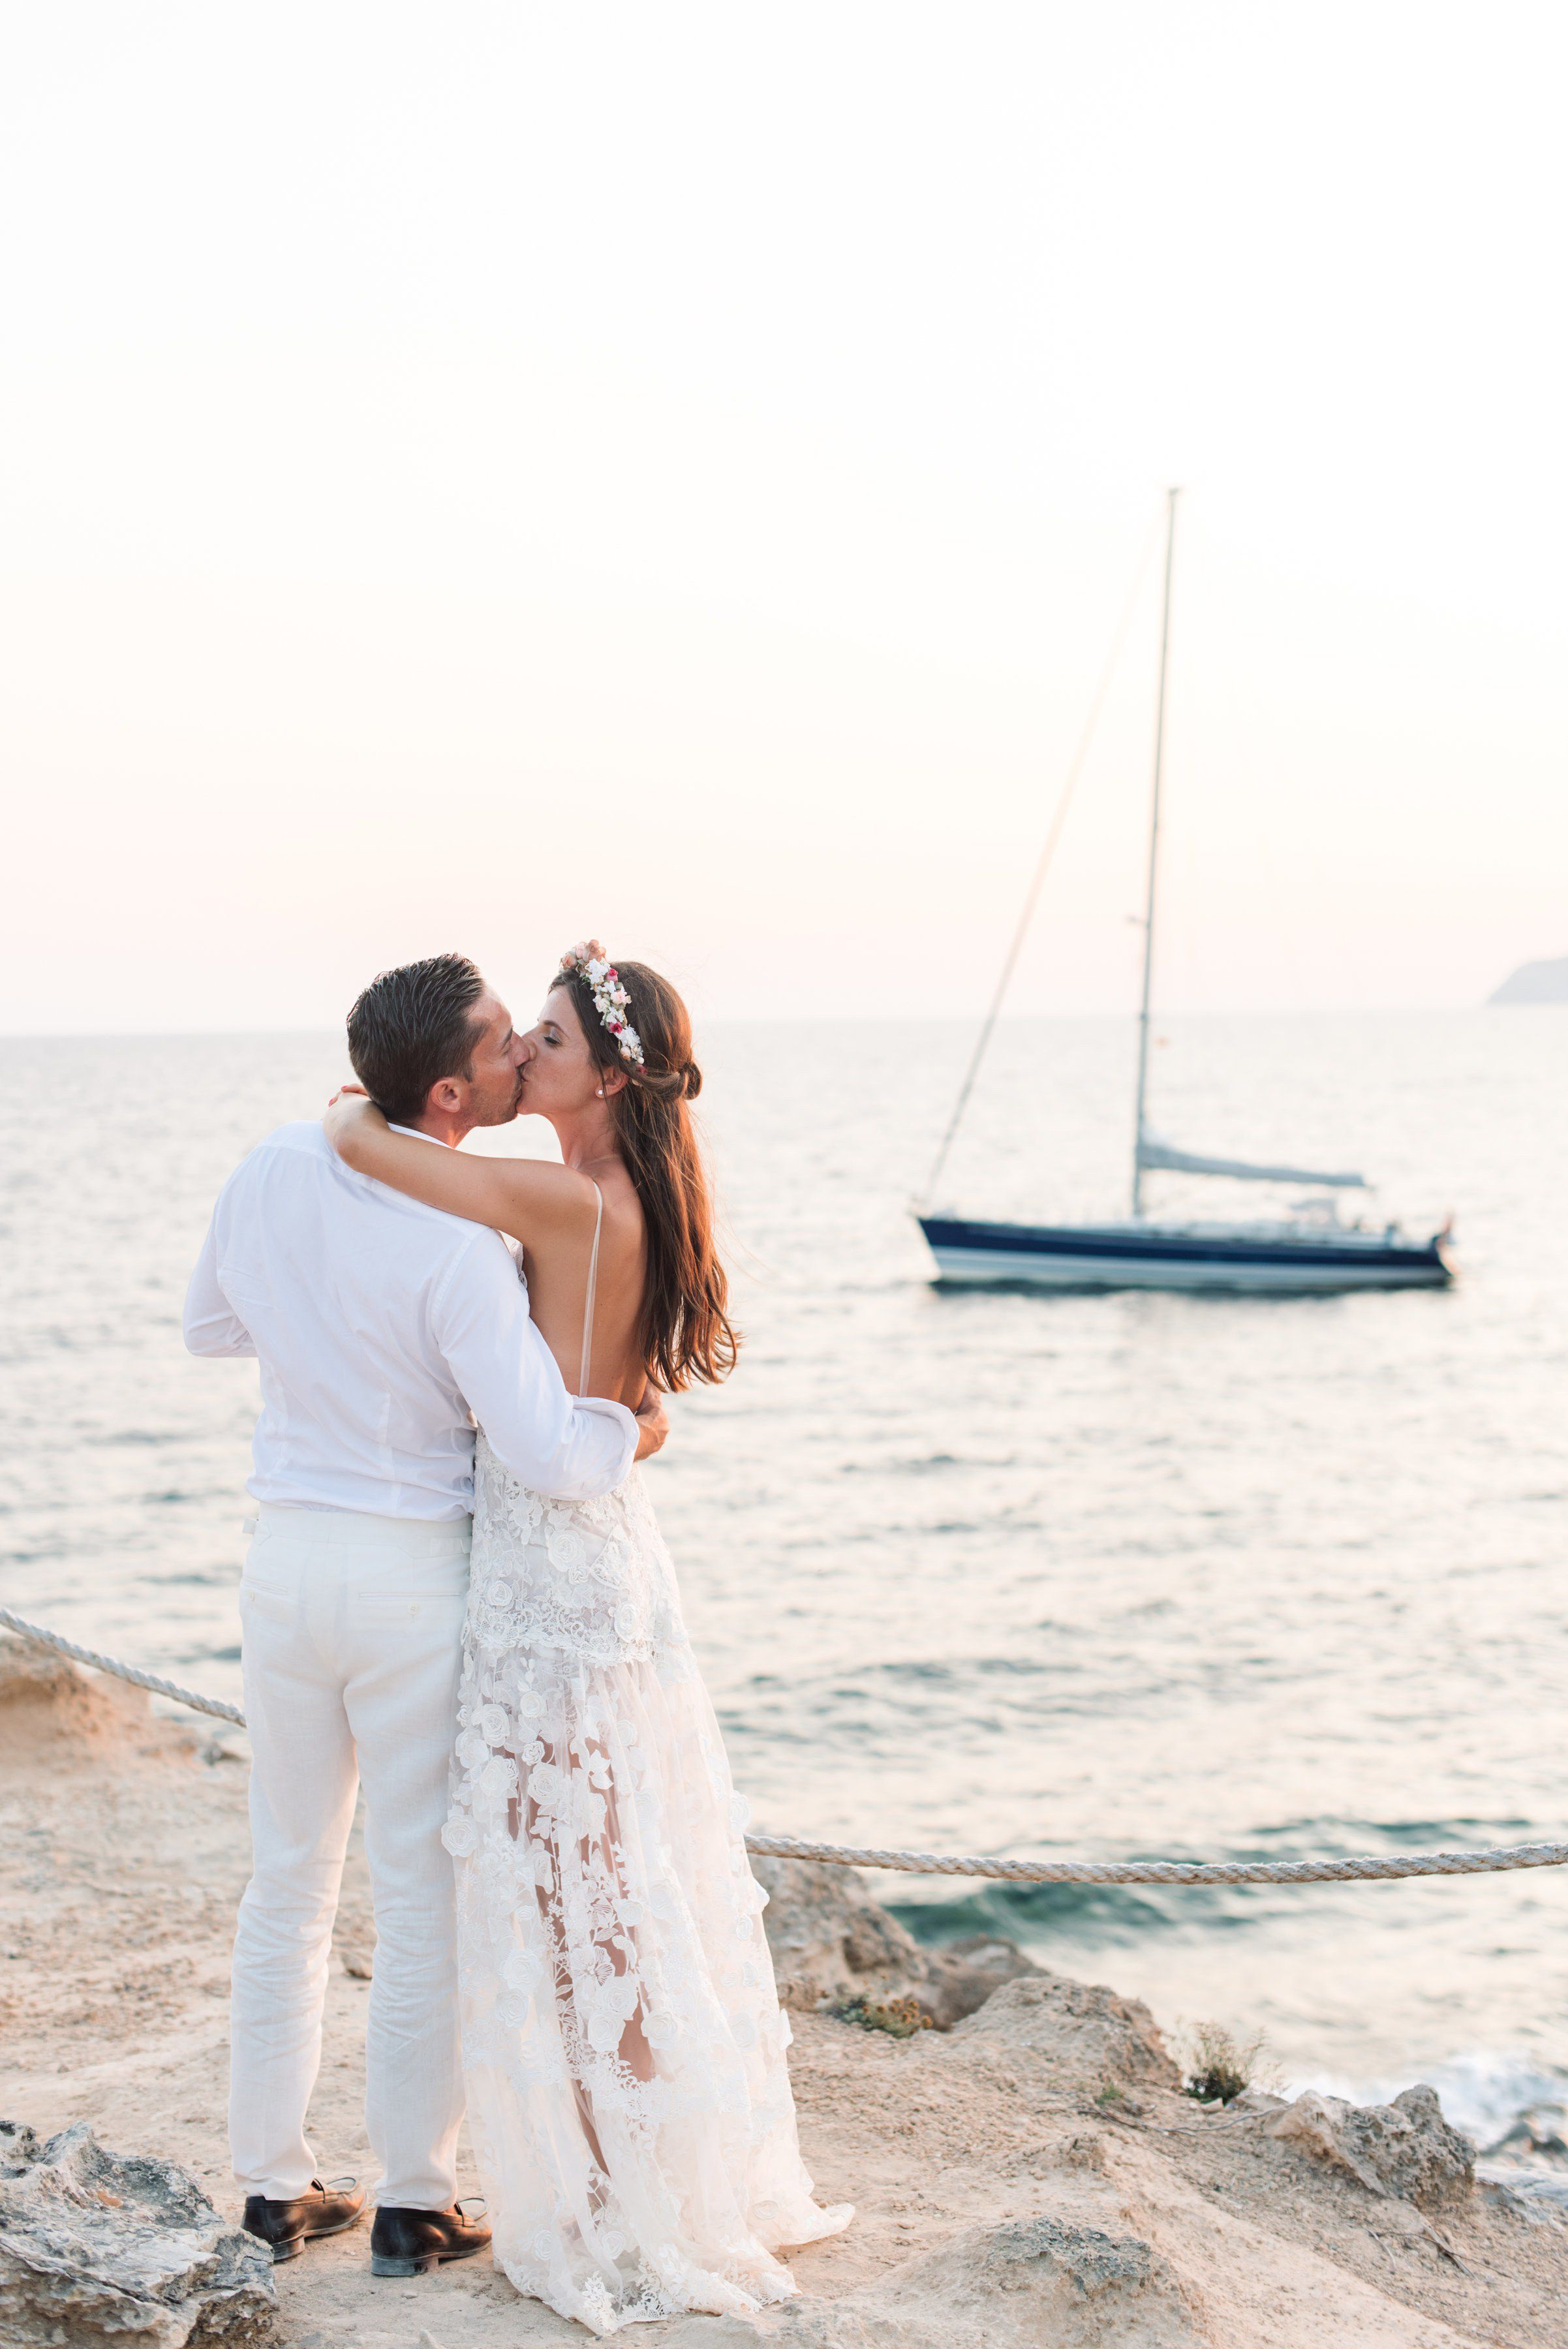 25 Shoes Perfect For Your Beach Wedding